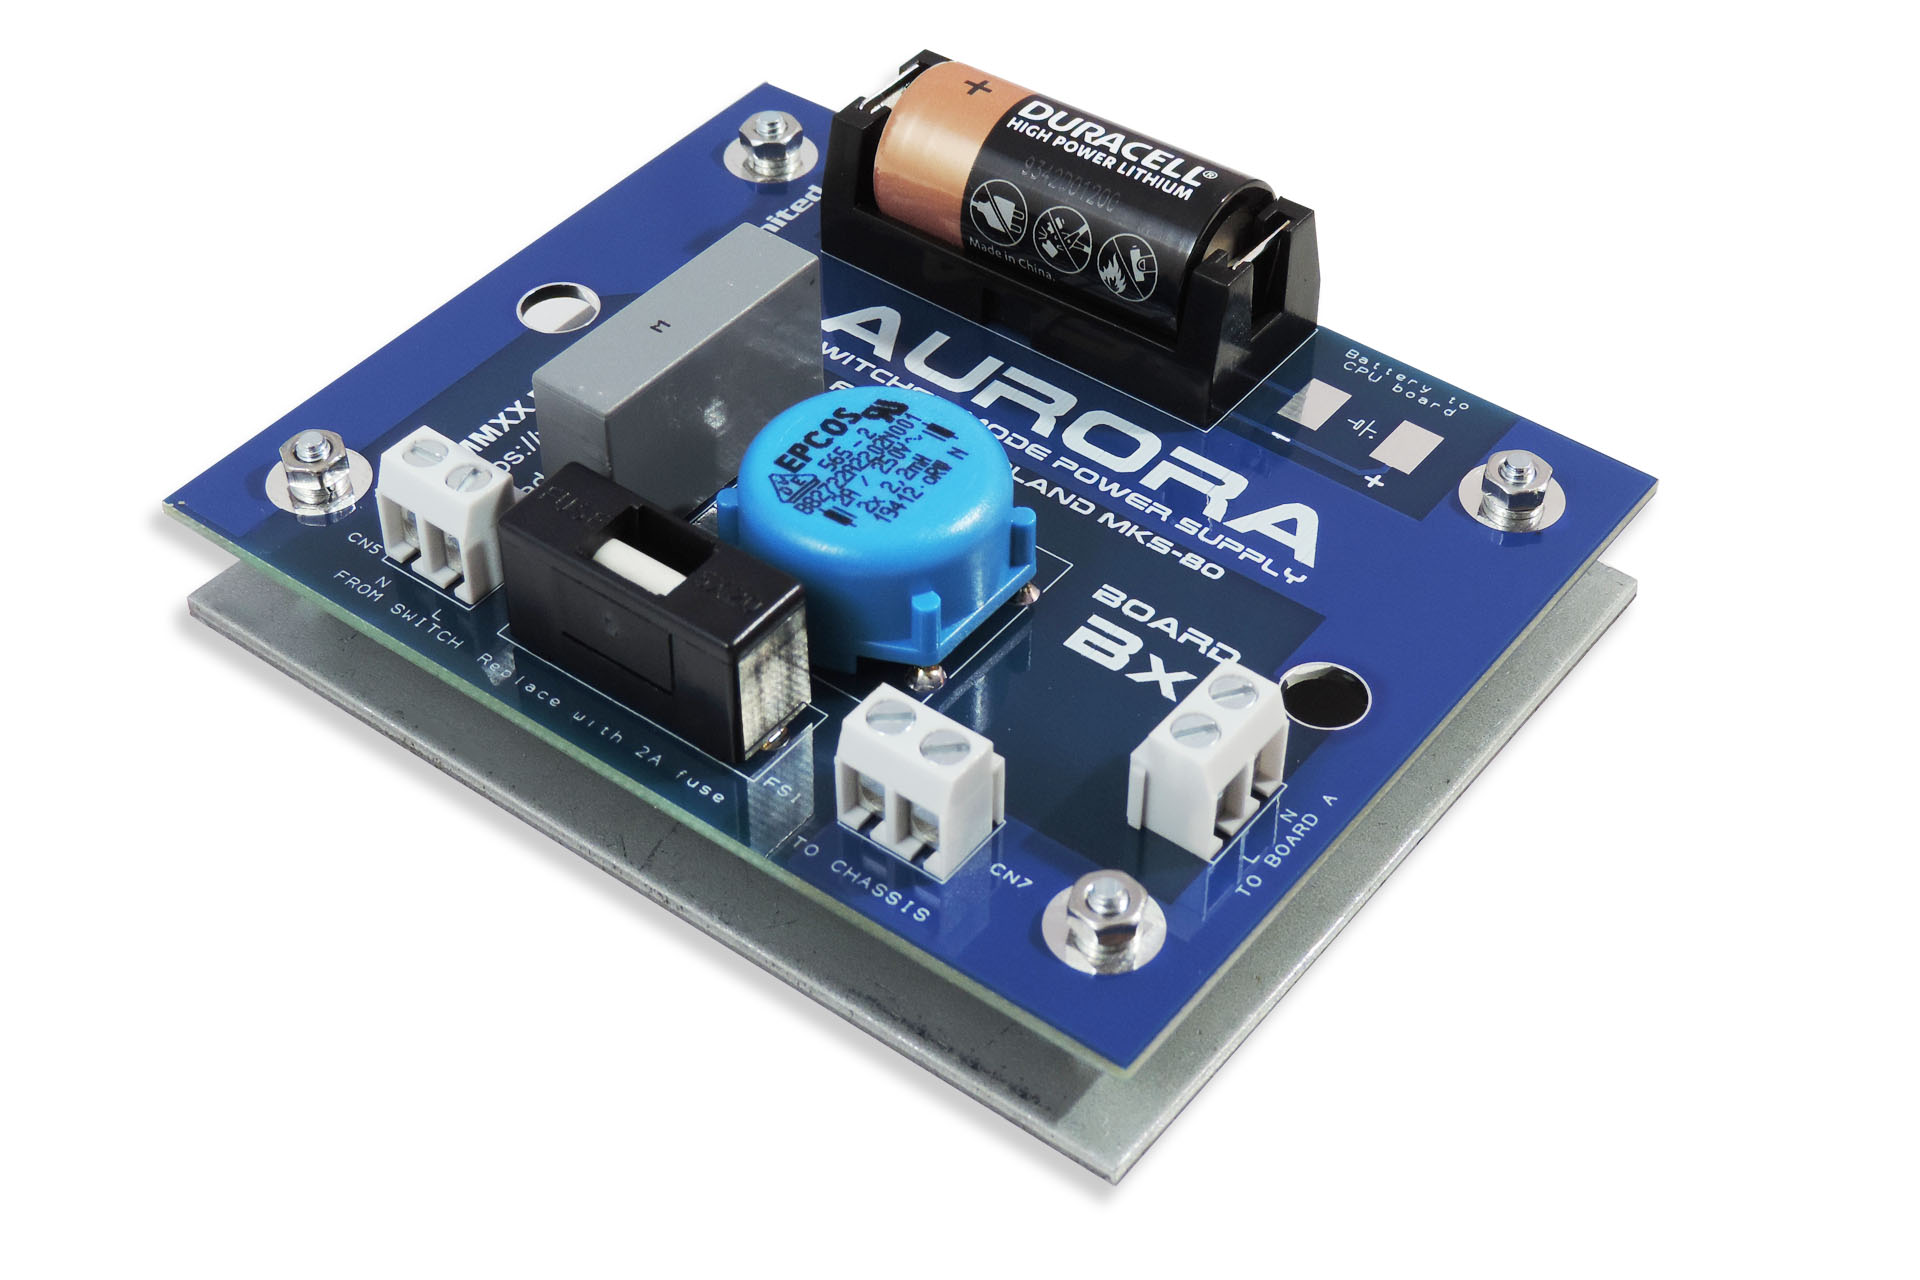 New Aurora Bx board with large capacity back-up battery